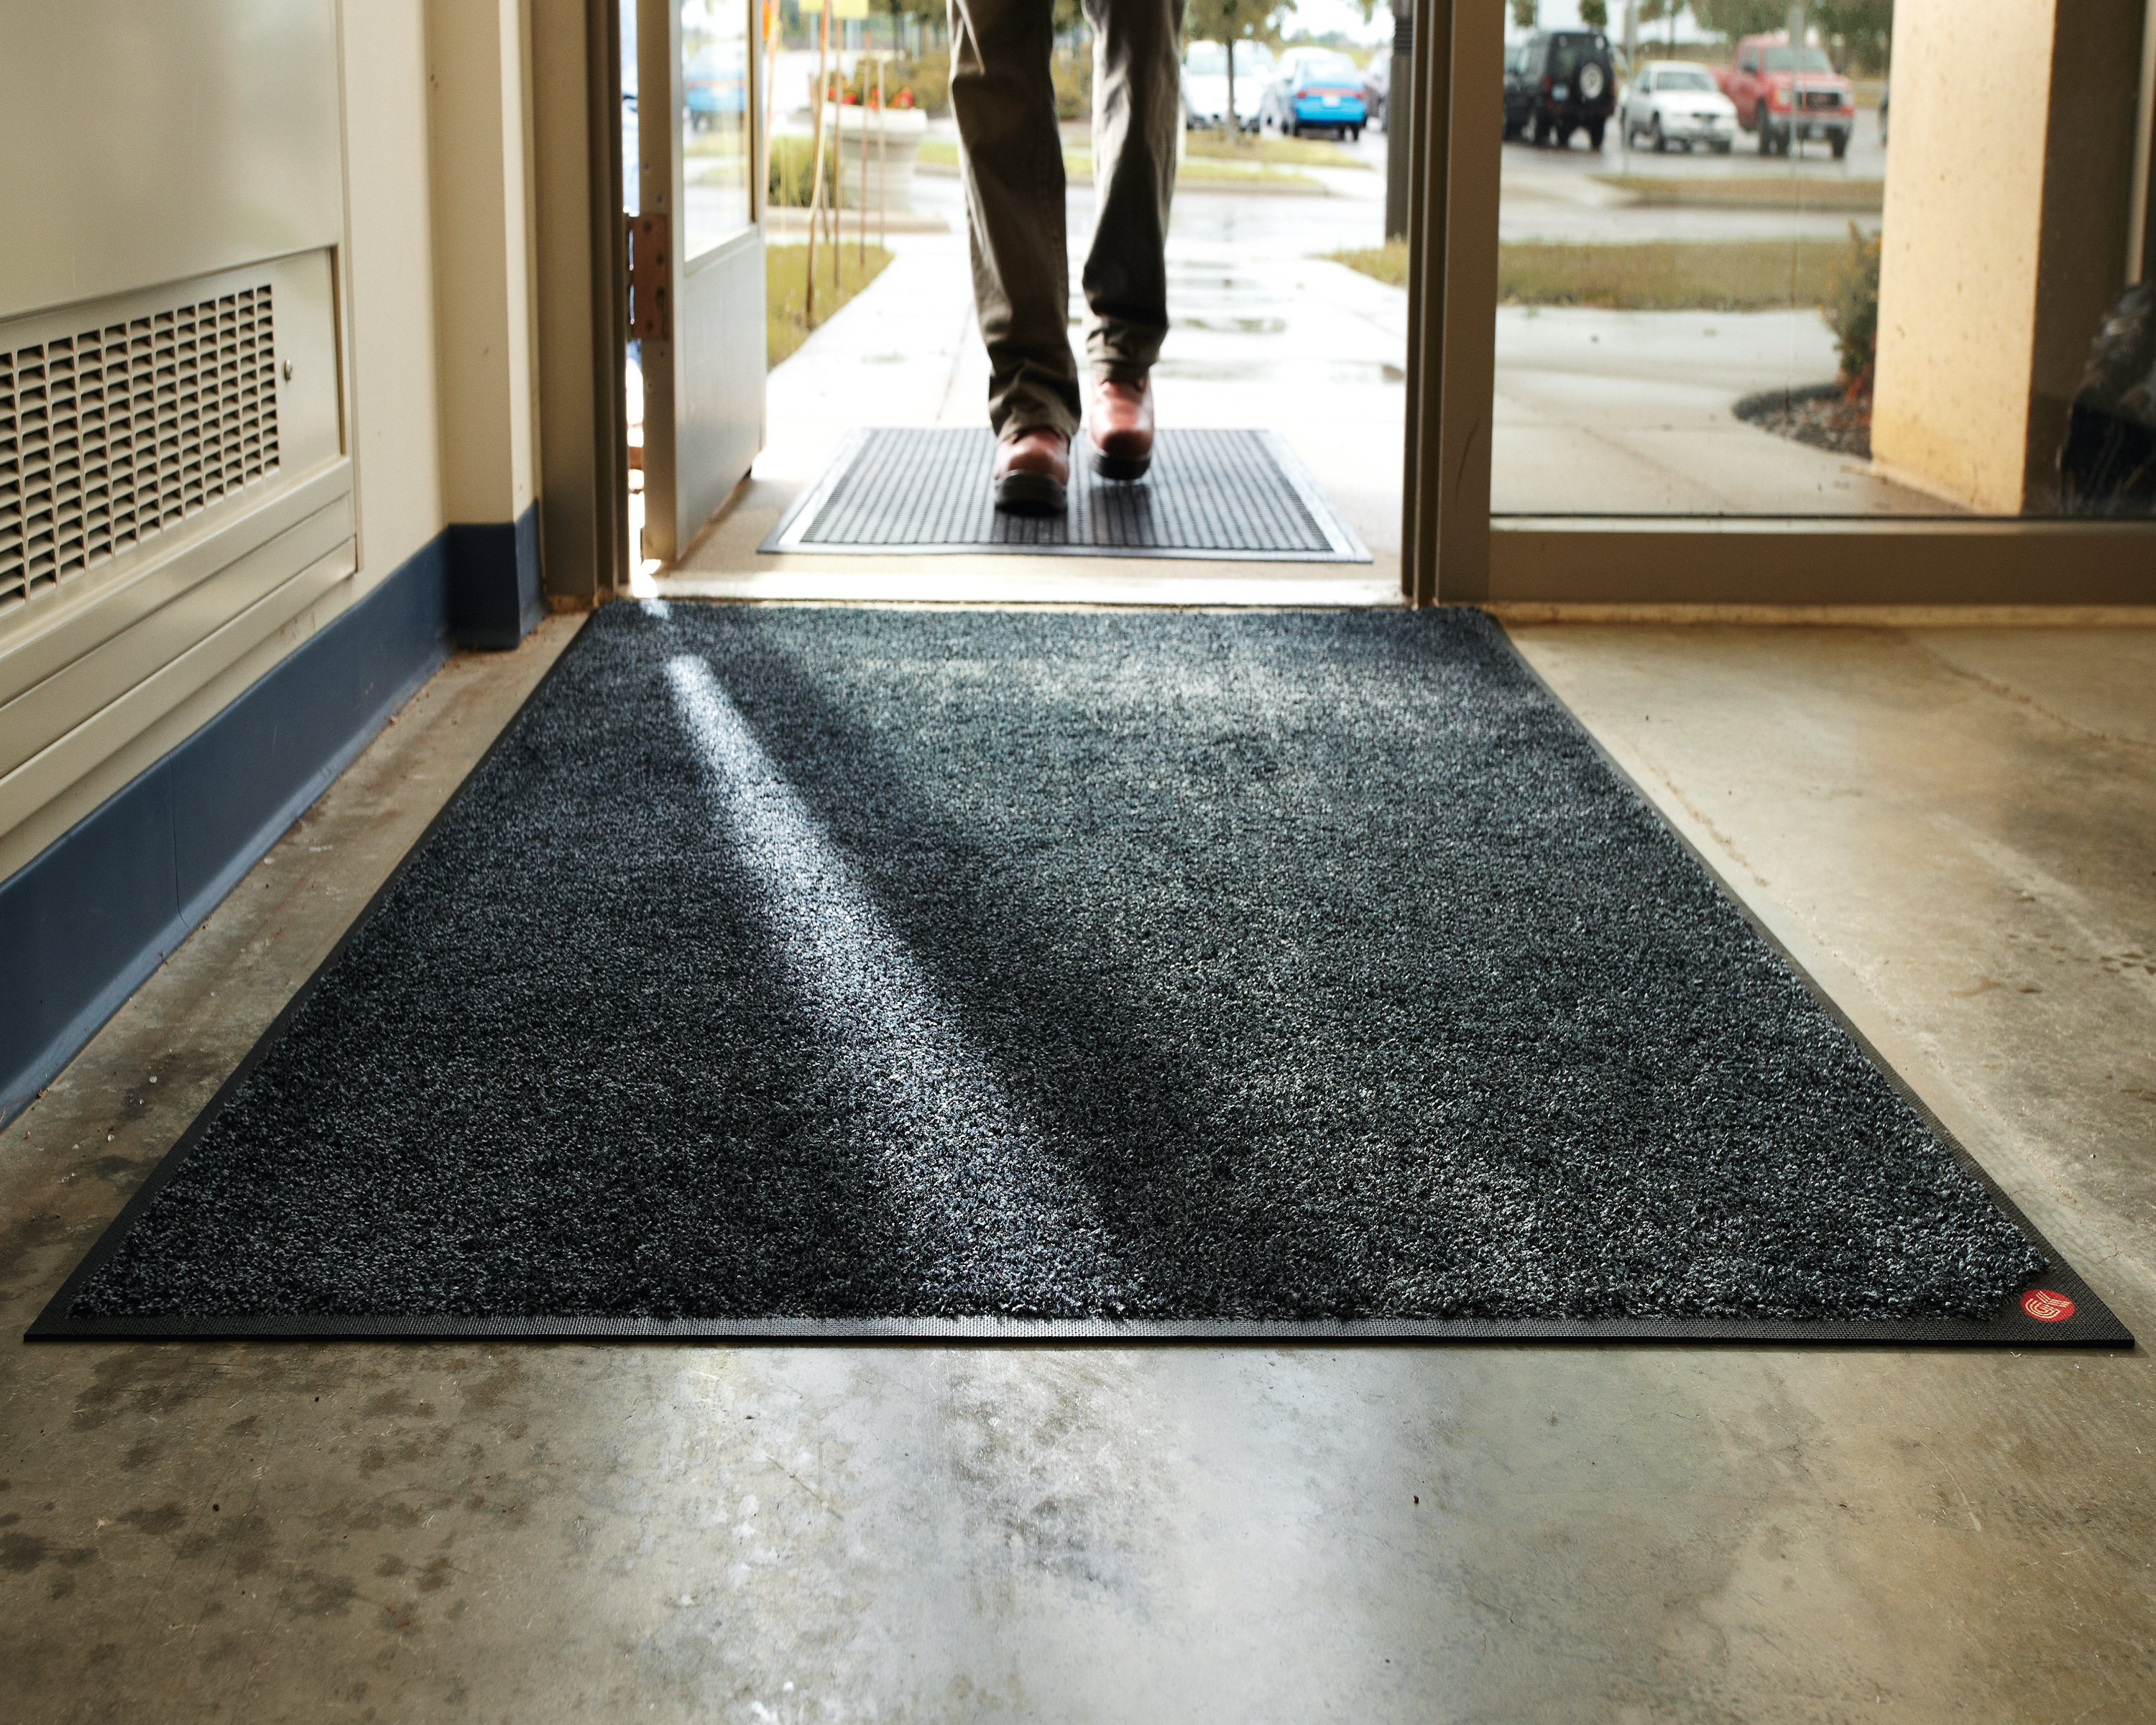 Attractive Gu0026K Services Promotes Winter Safety With Floor Mat Tips For Businesses |  Business Wire